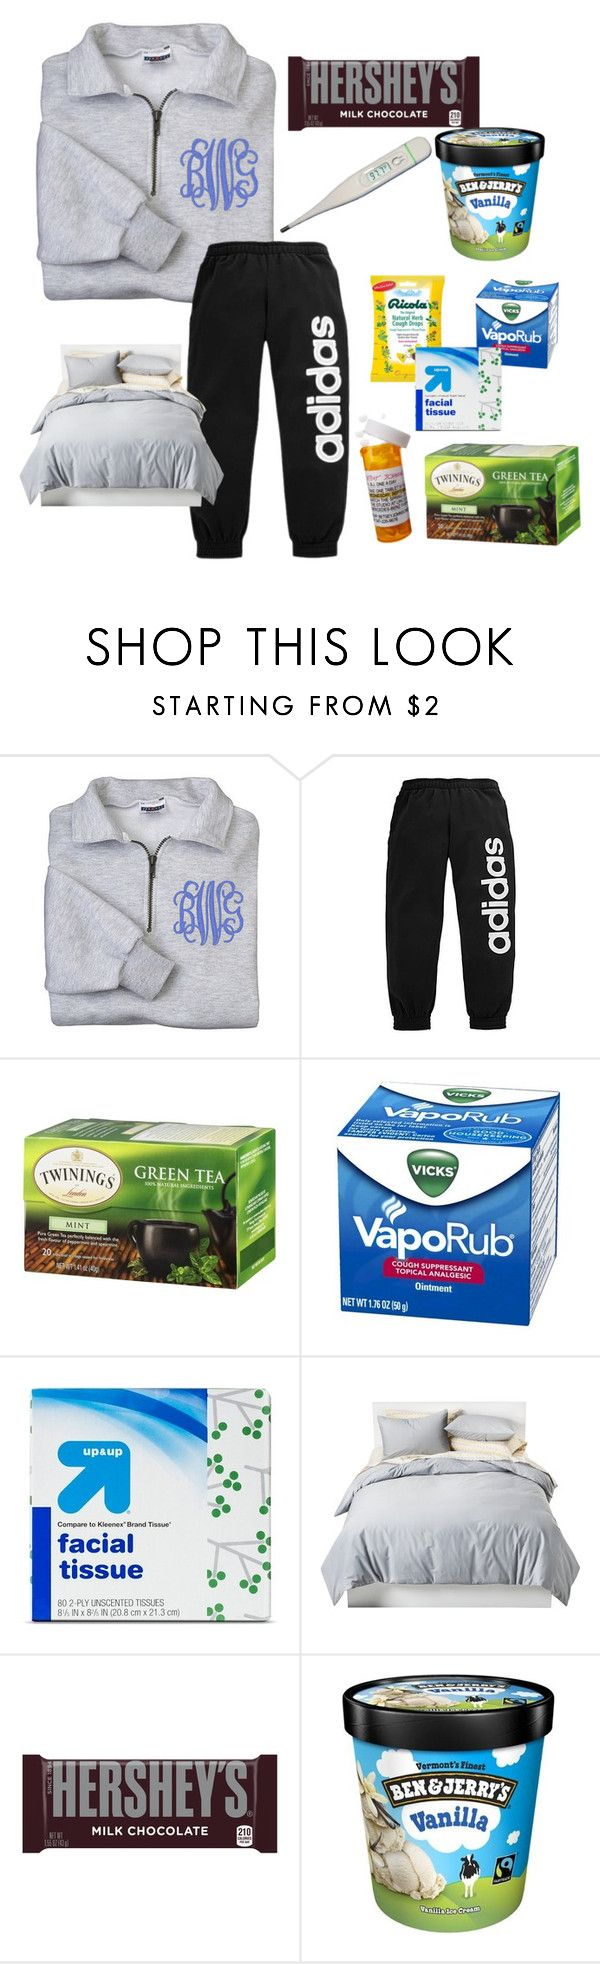 """""""I'm so stinking sick"""" by emidunham ❤ liked on Polyvore featuring adidas, Up & Up, Betsey Johnson, Room Essentials and Hershey's"""